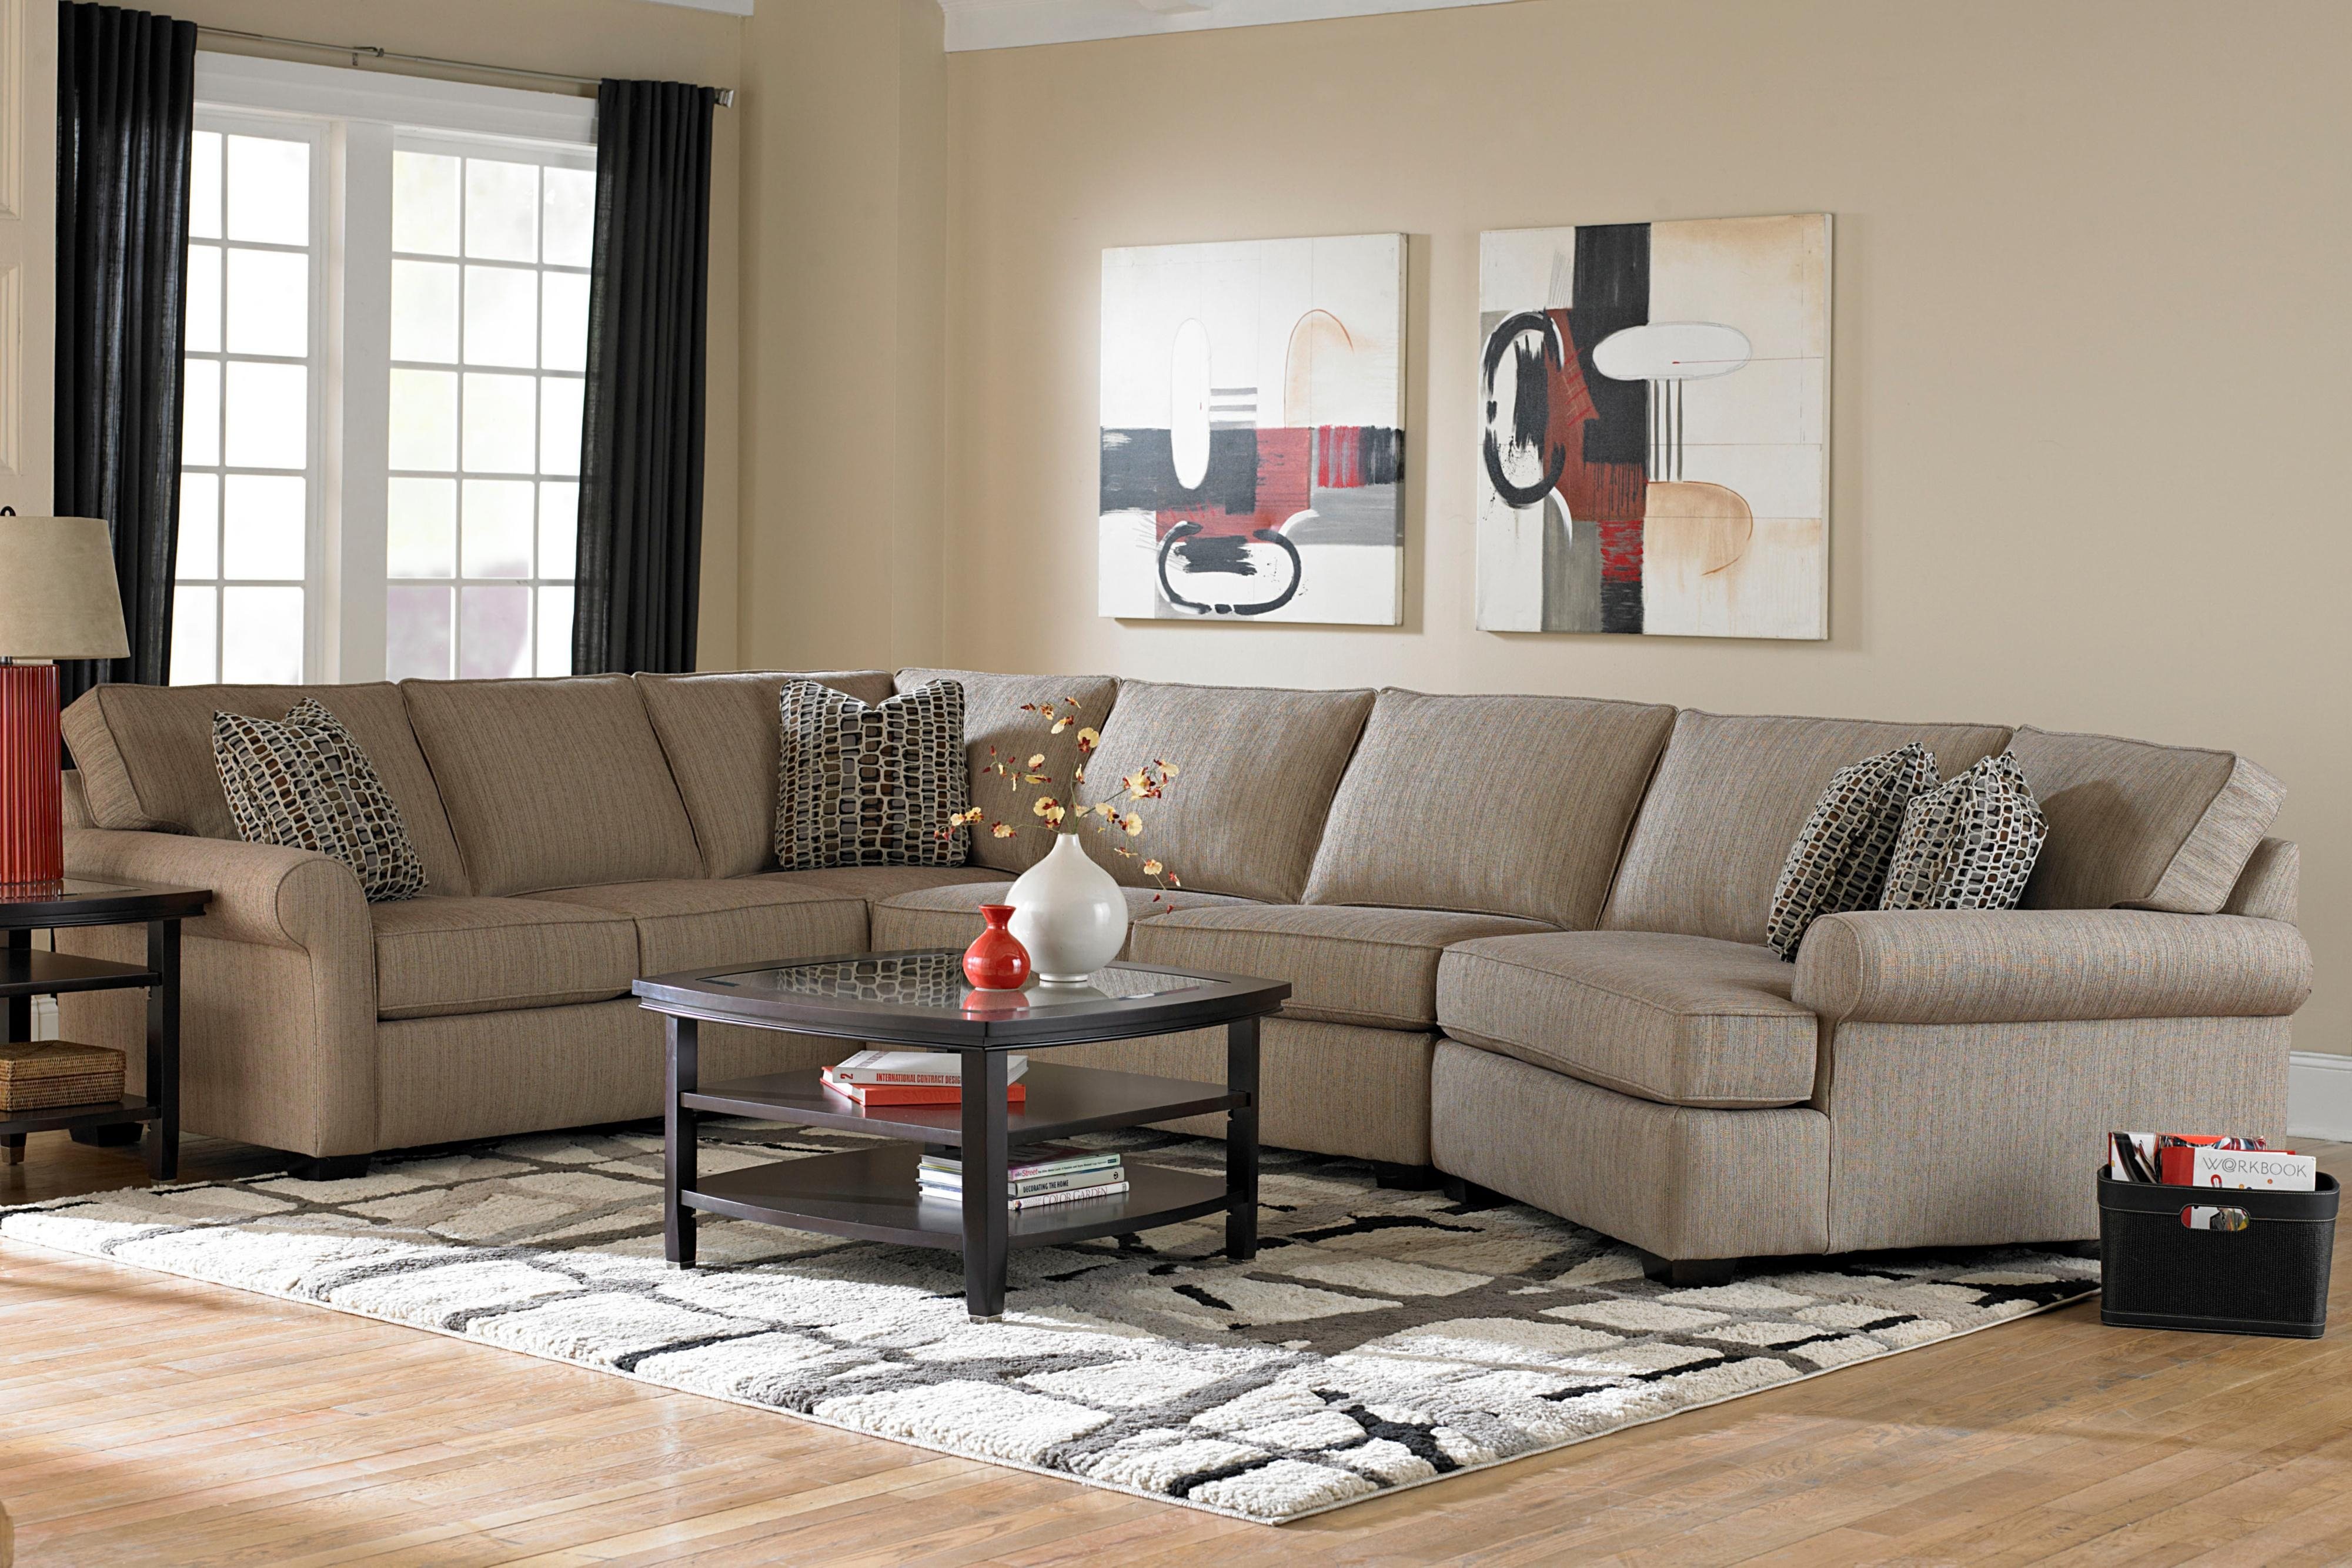 Broyhill Furniture Ethan Transitional Sectional Sofa With Right Within Cuddler Sectional Sofa (Image 6 of 15)